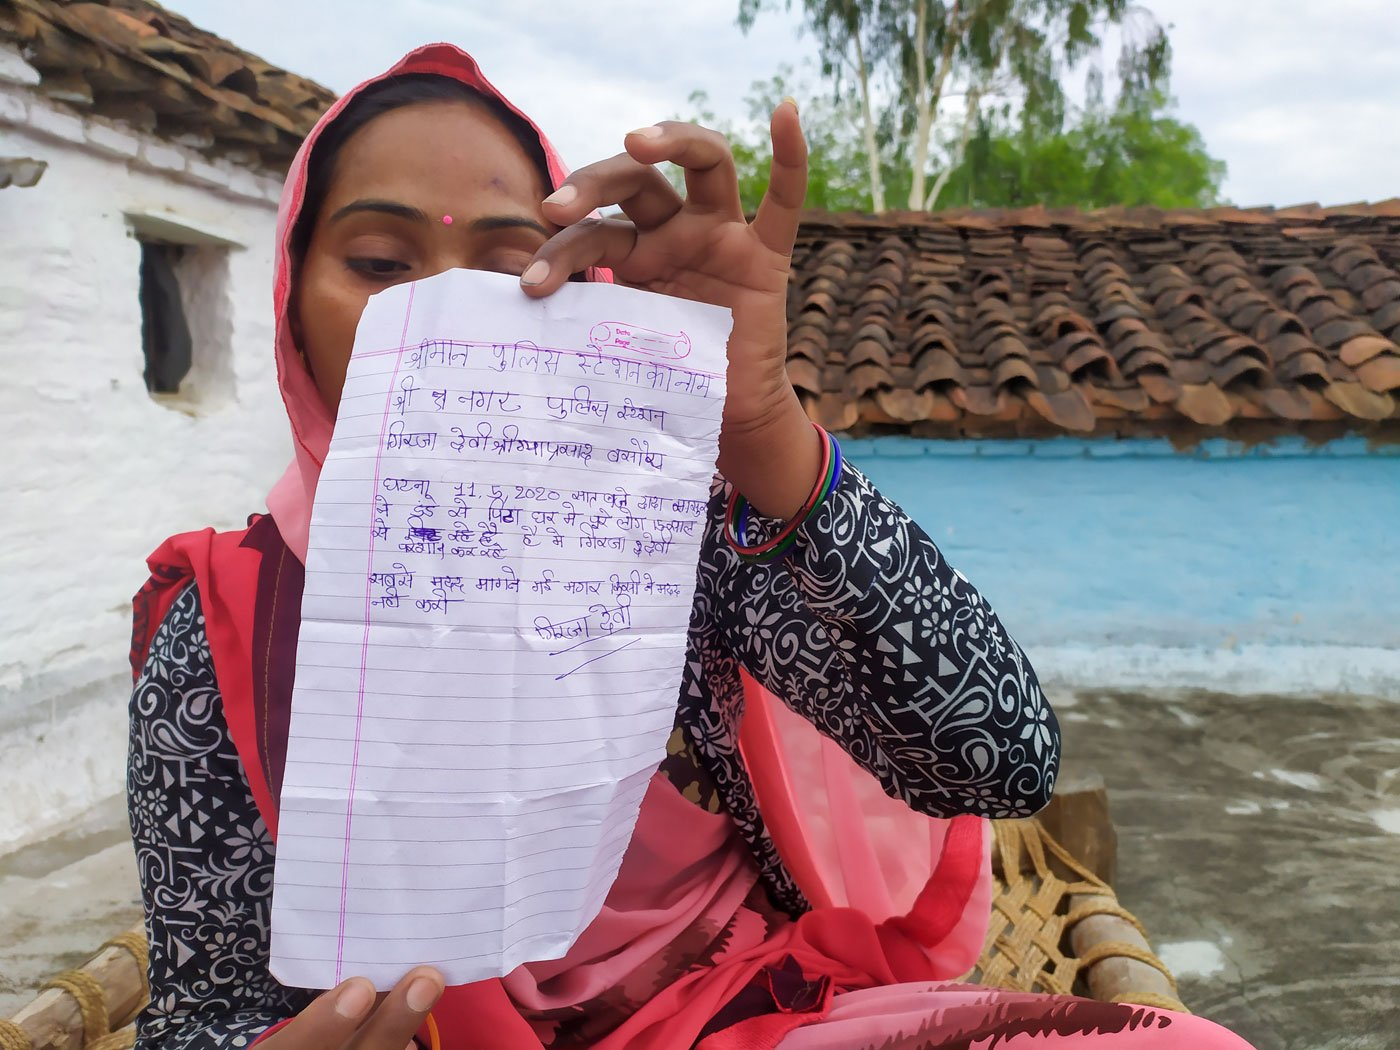 Girija with the letter of complaint for the police that she had her 14-year-old daughter Anuradha write on her behalf